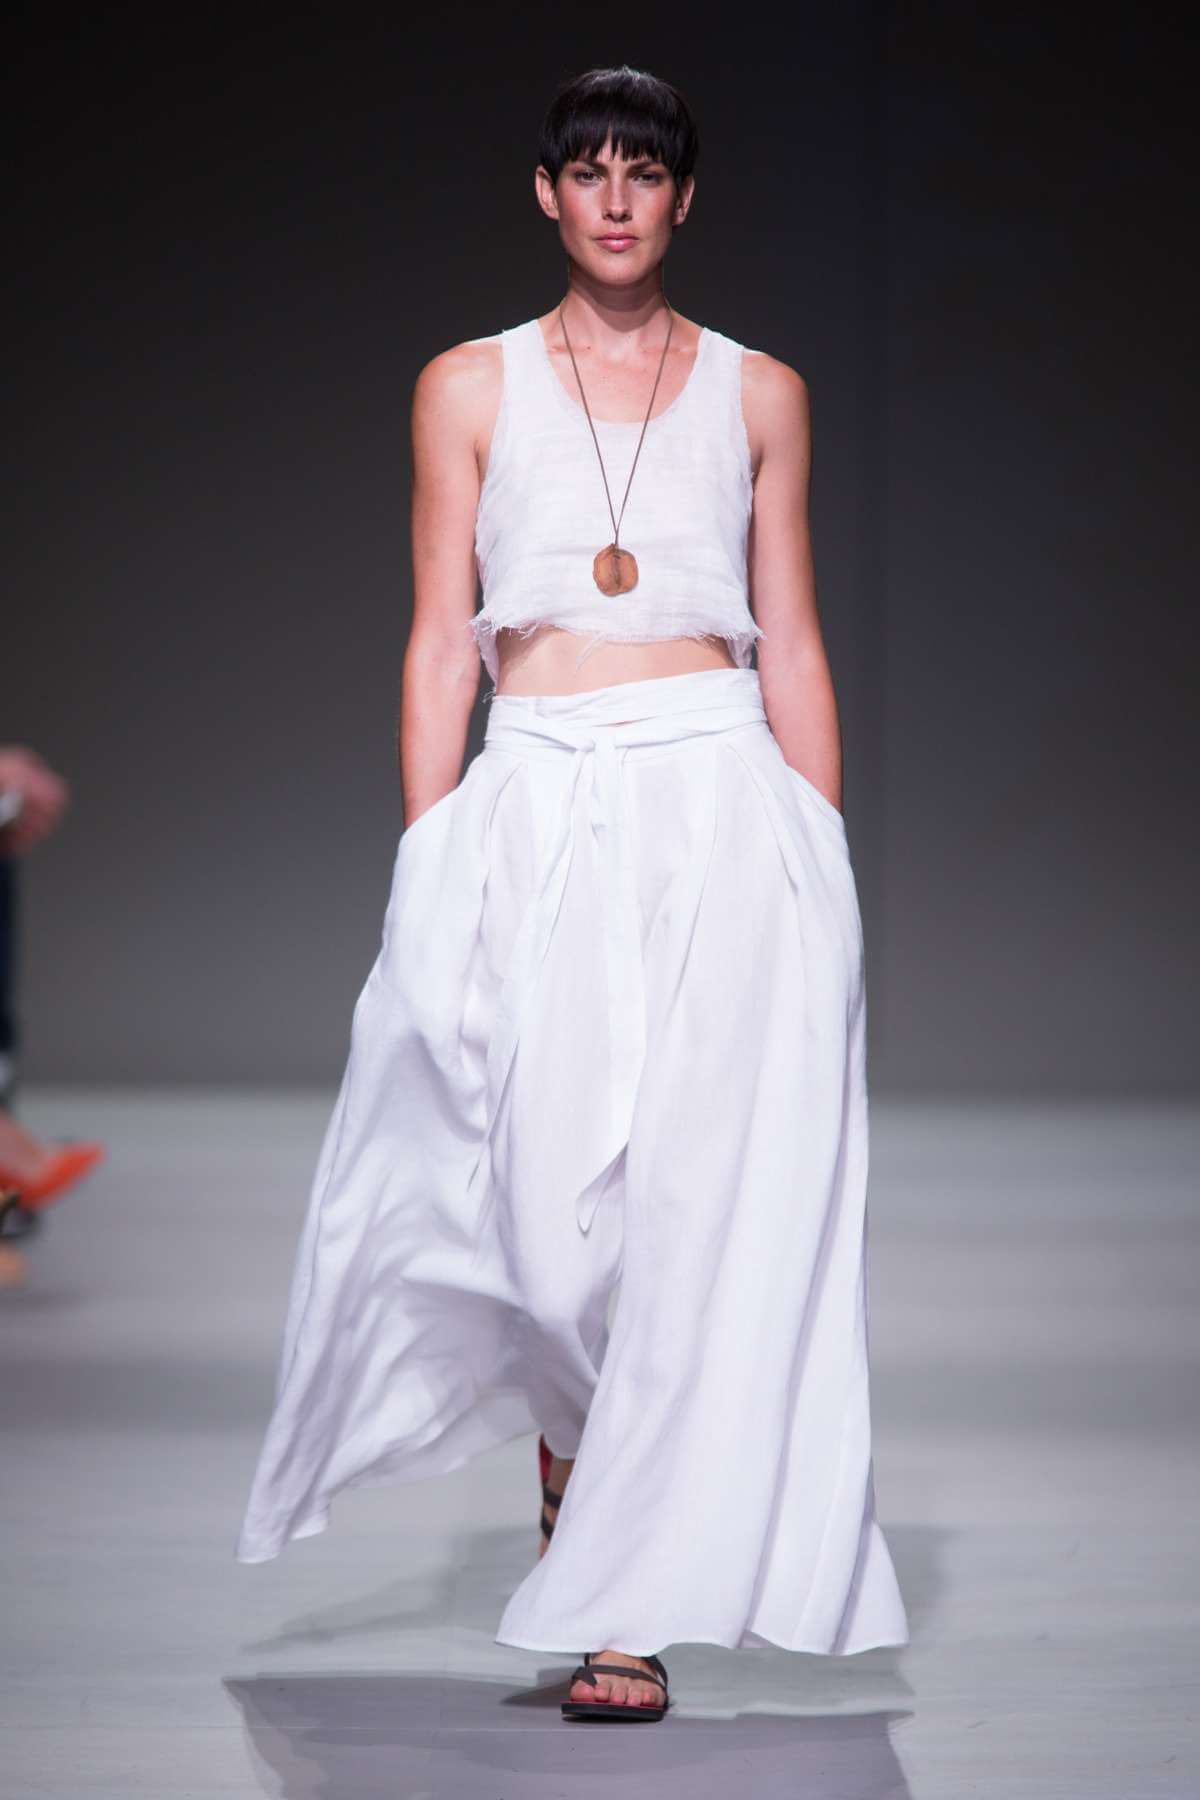 Lunar Crop Top and Linen Samurai Pants